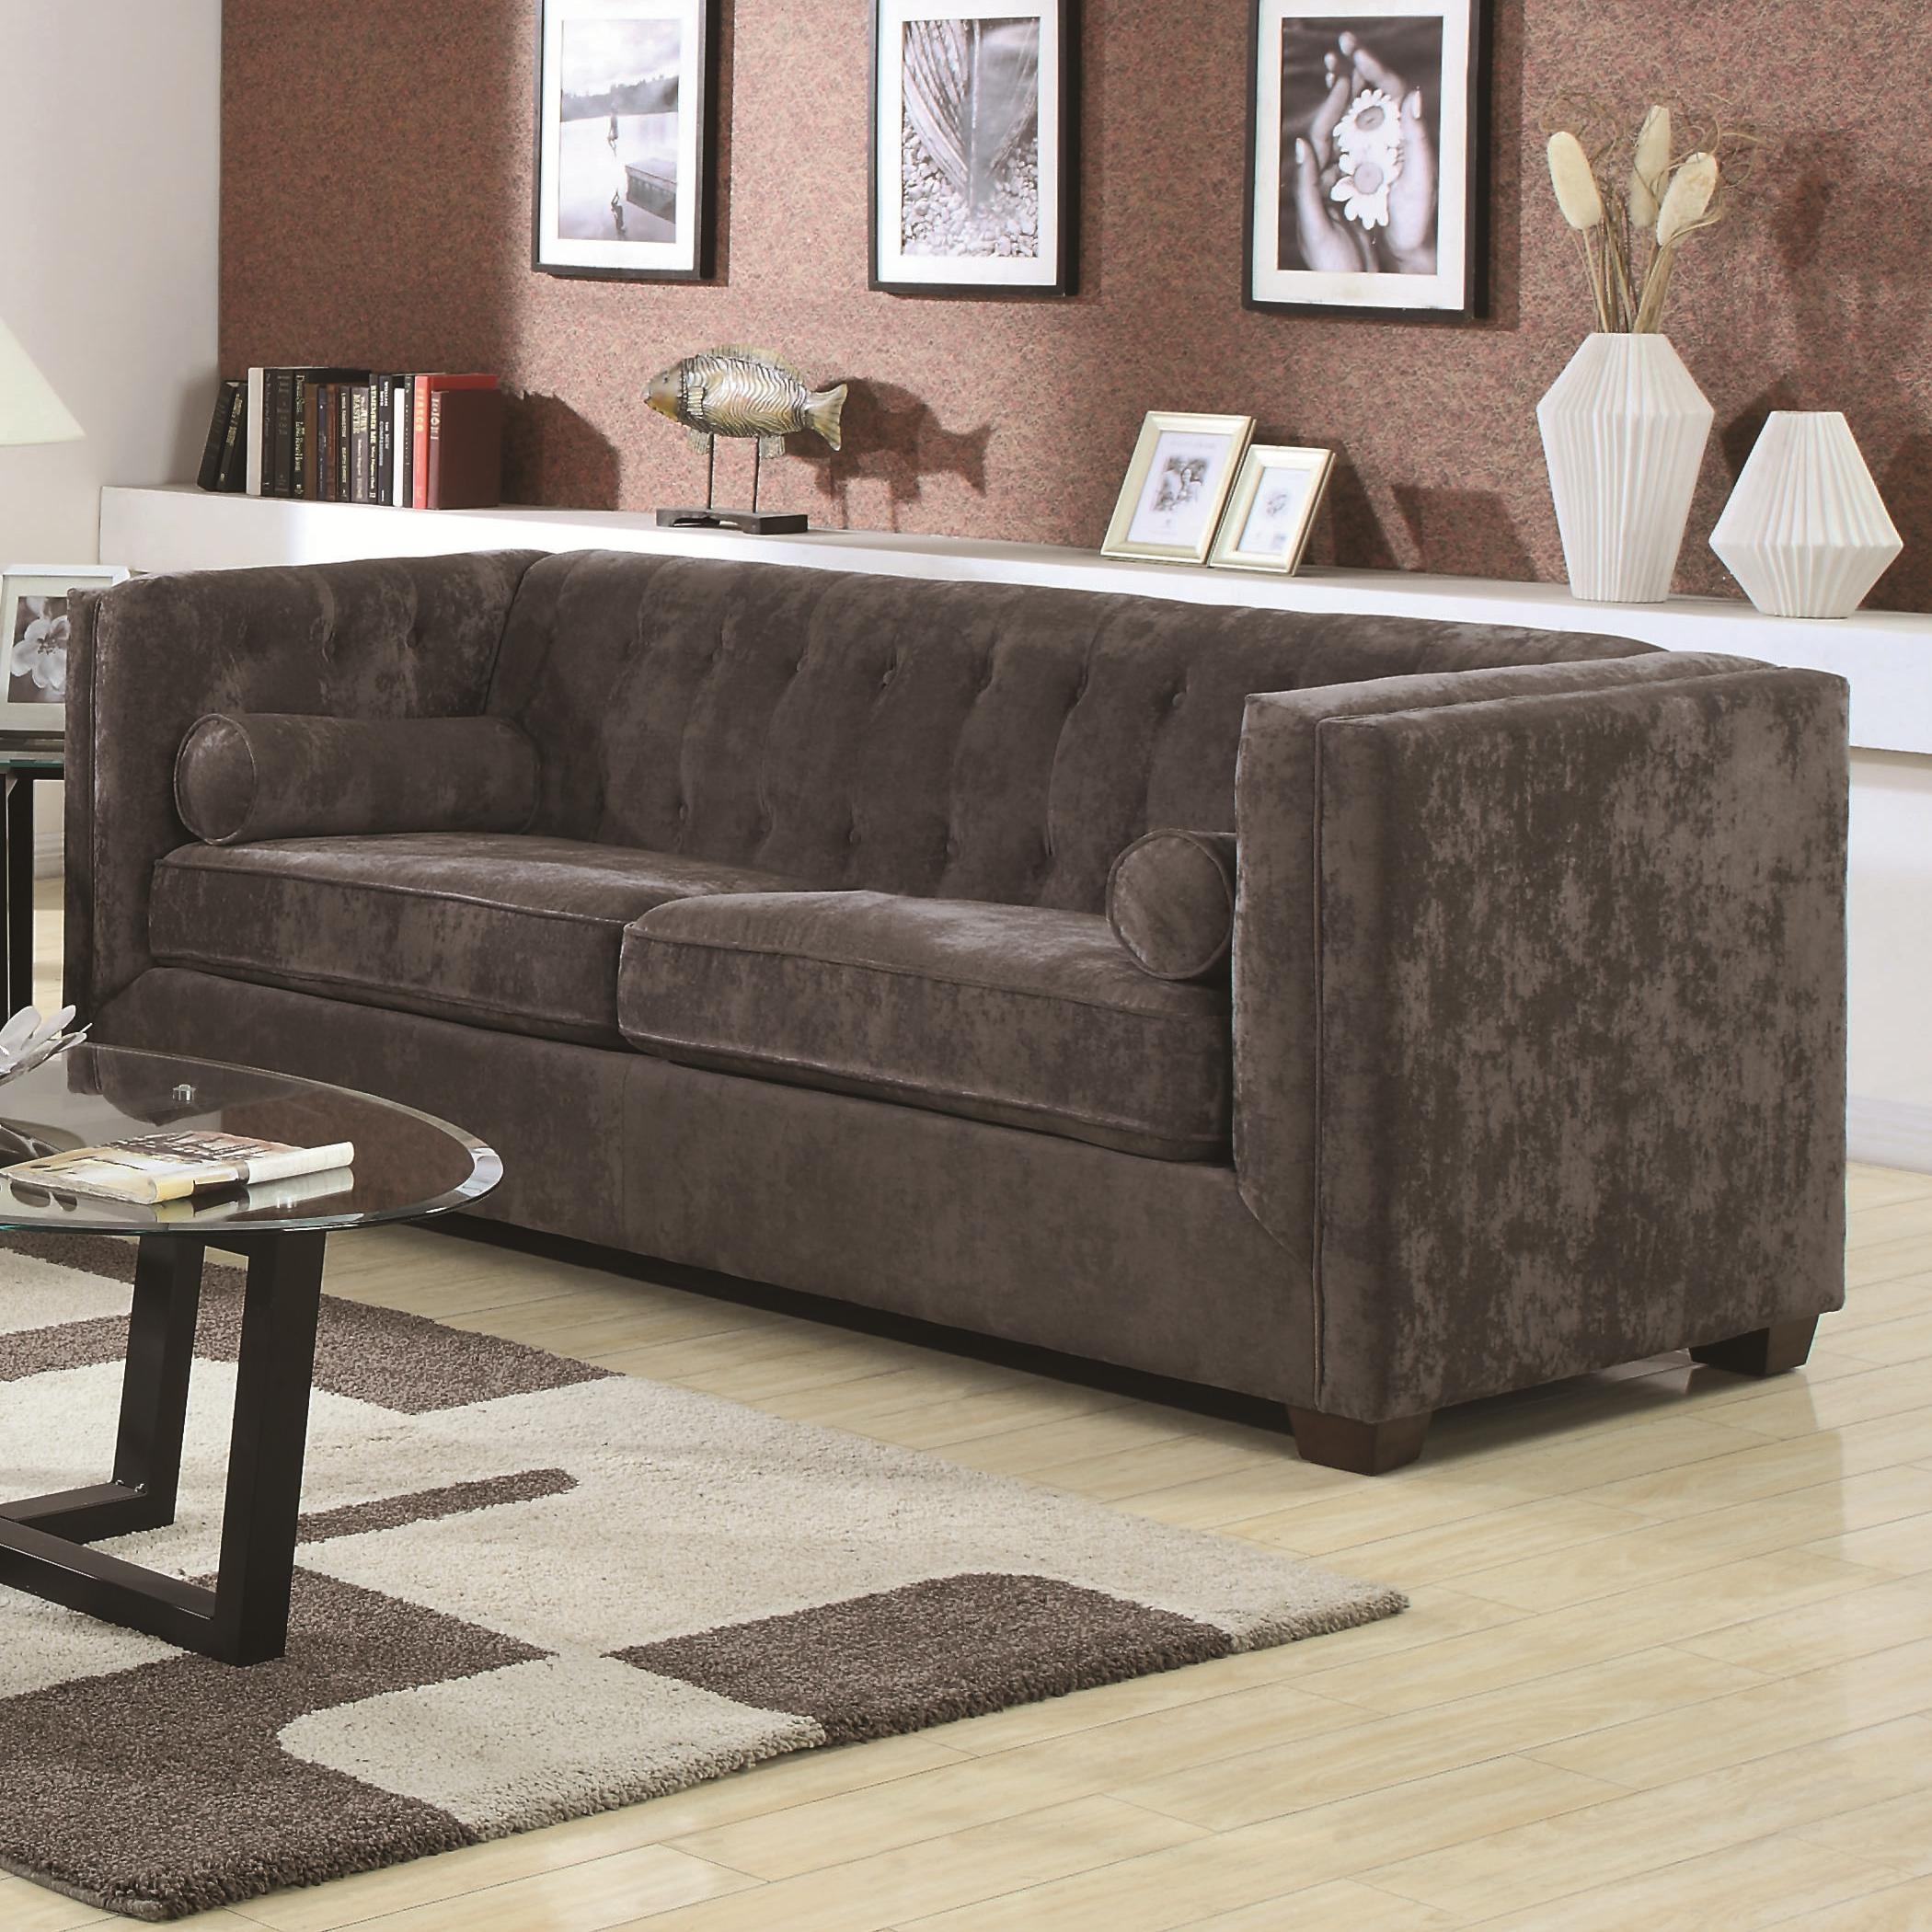 Coaster Alexis Ch Transitional Chesterfield Sofa With Track Arms Value City Furniture Sofas